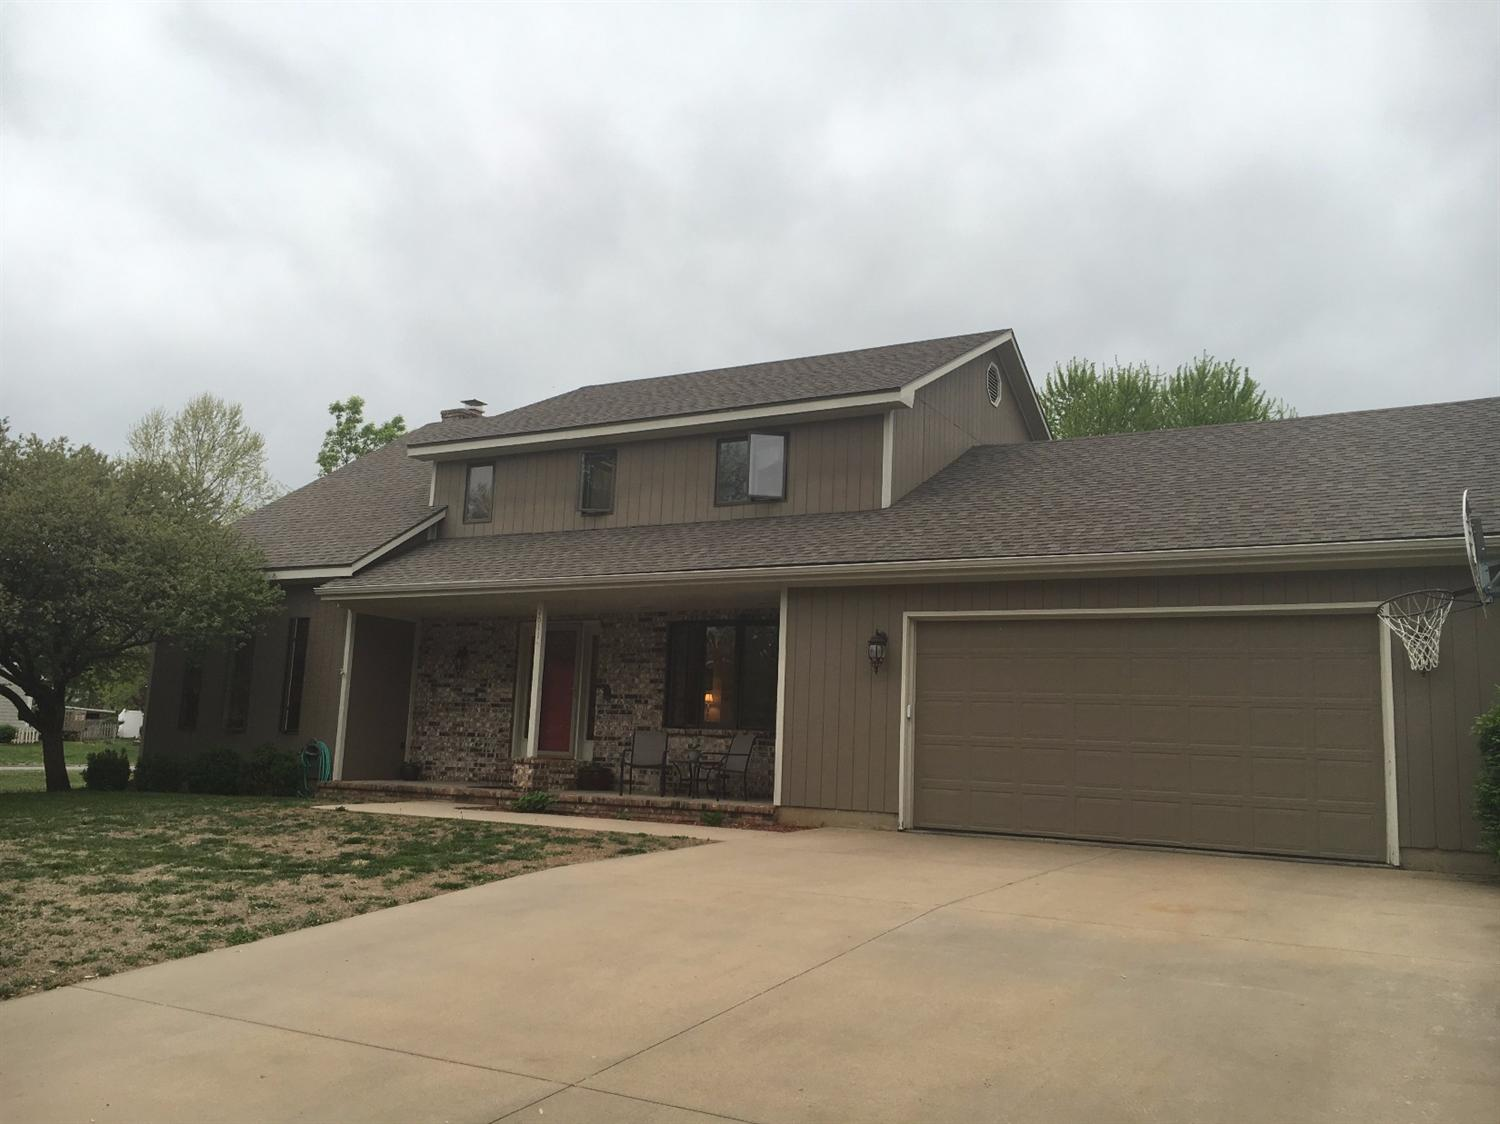 2611 Willow Lane, Emporia, KS 66801